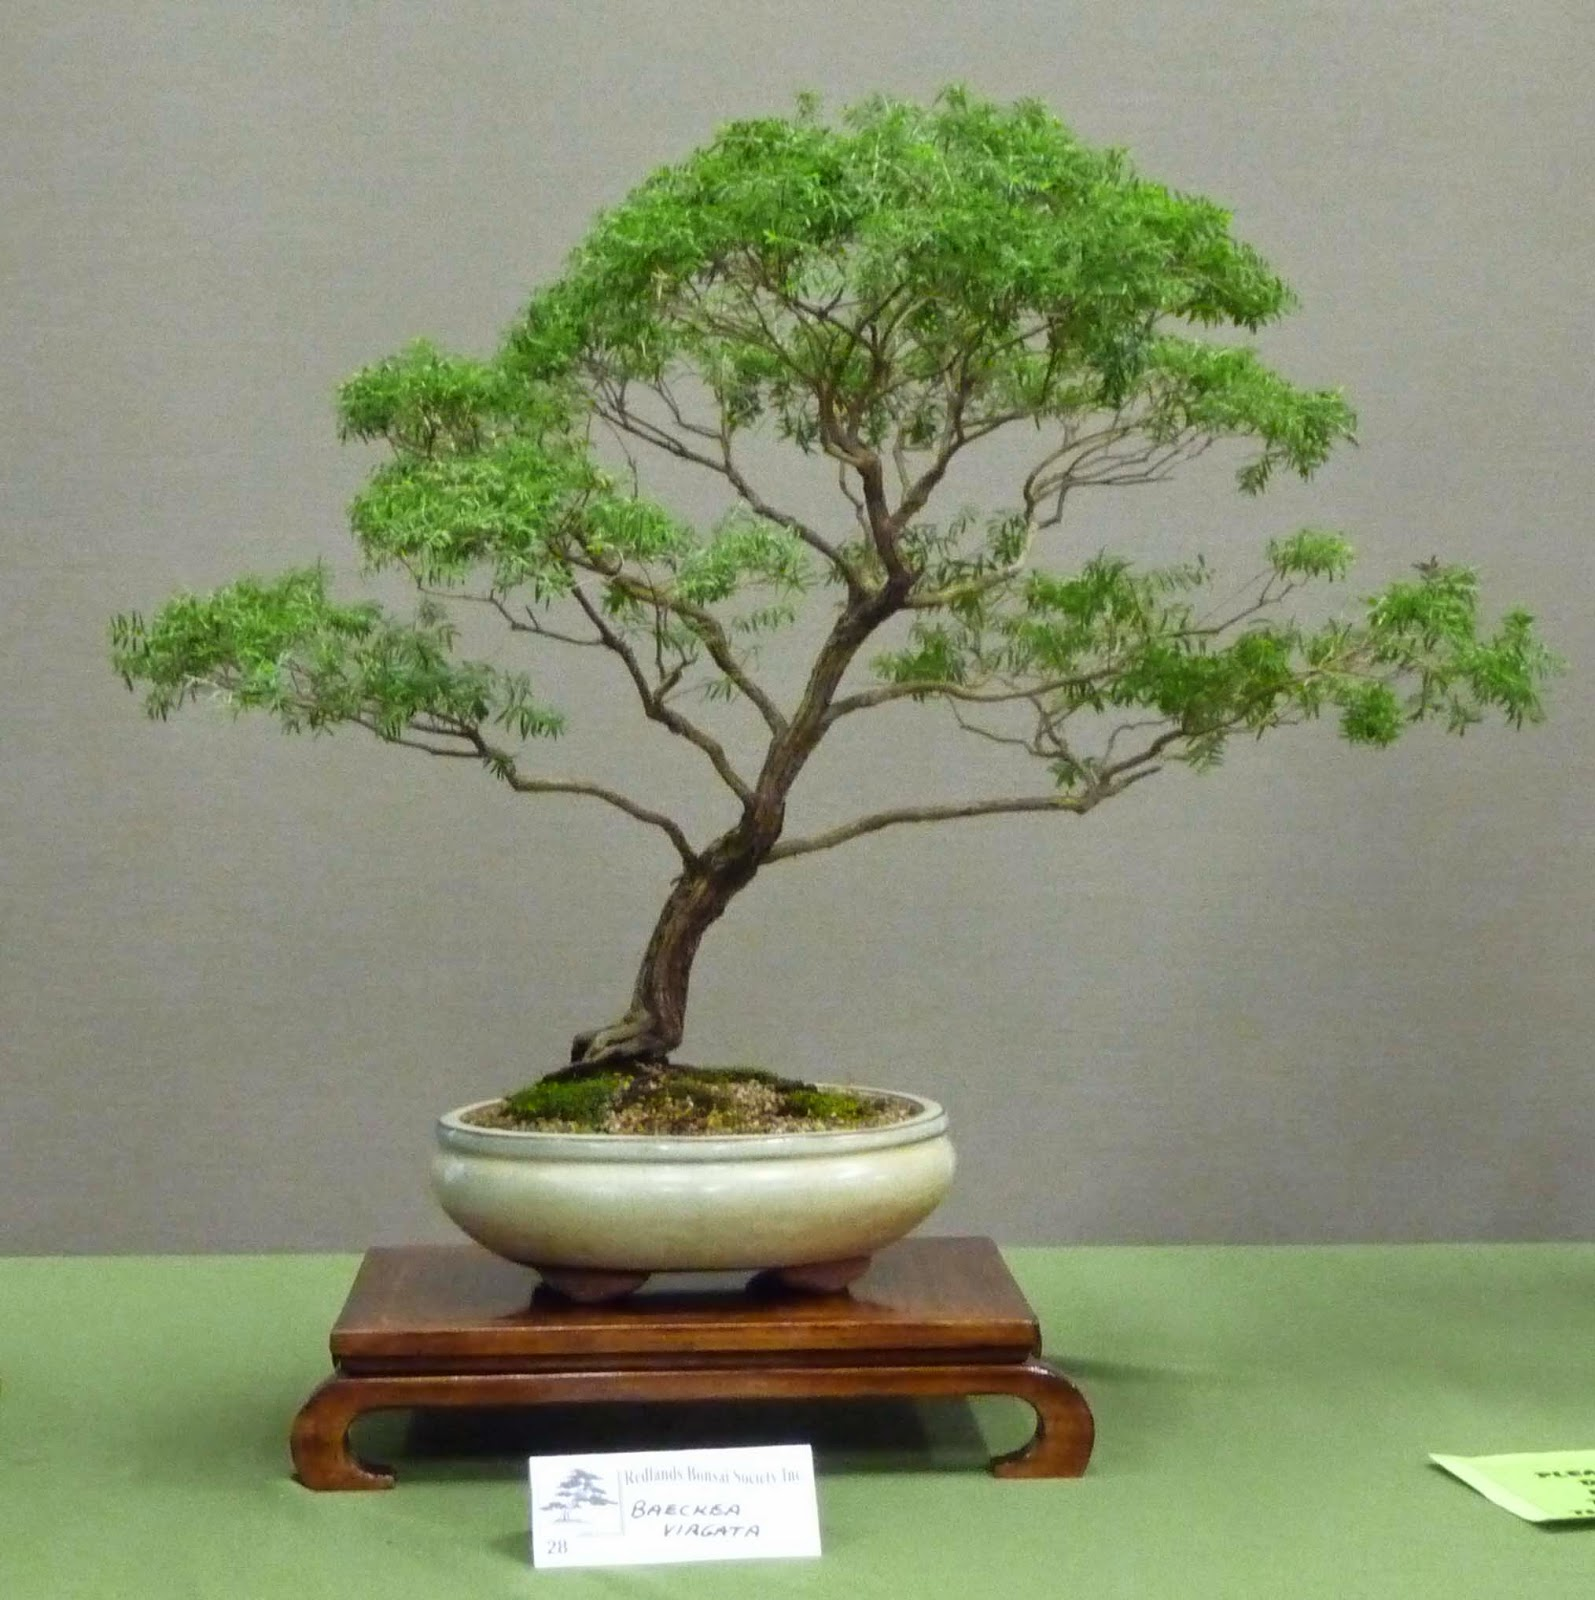 Bonsai Amp Pottery Post 150 Australian Native Bonsai Exhibition